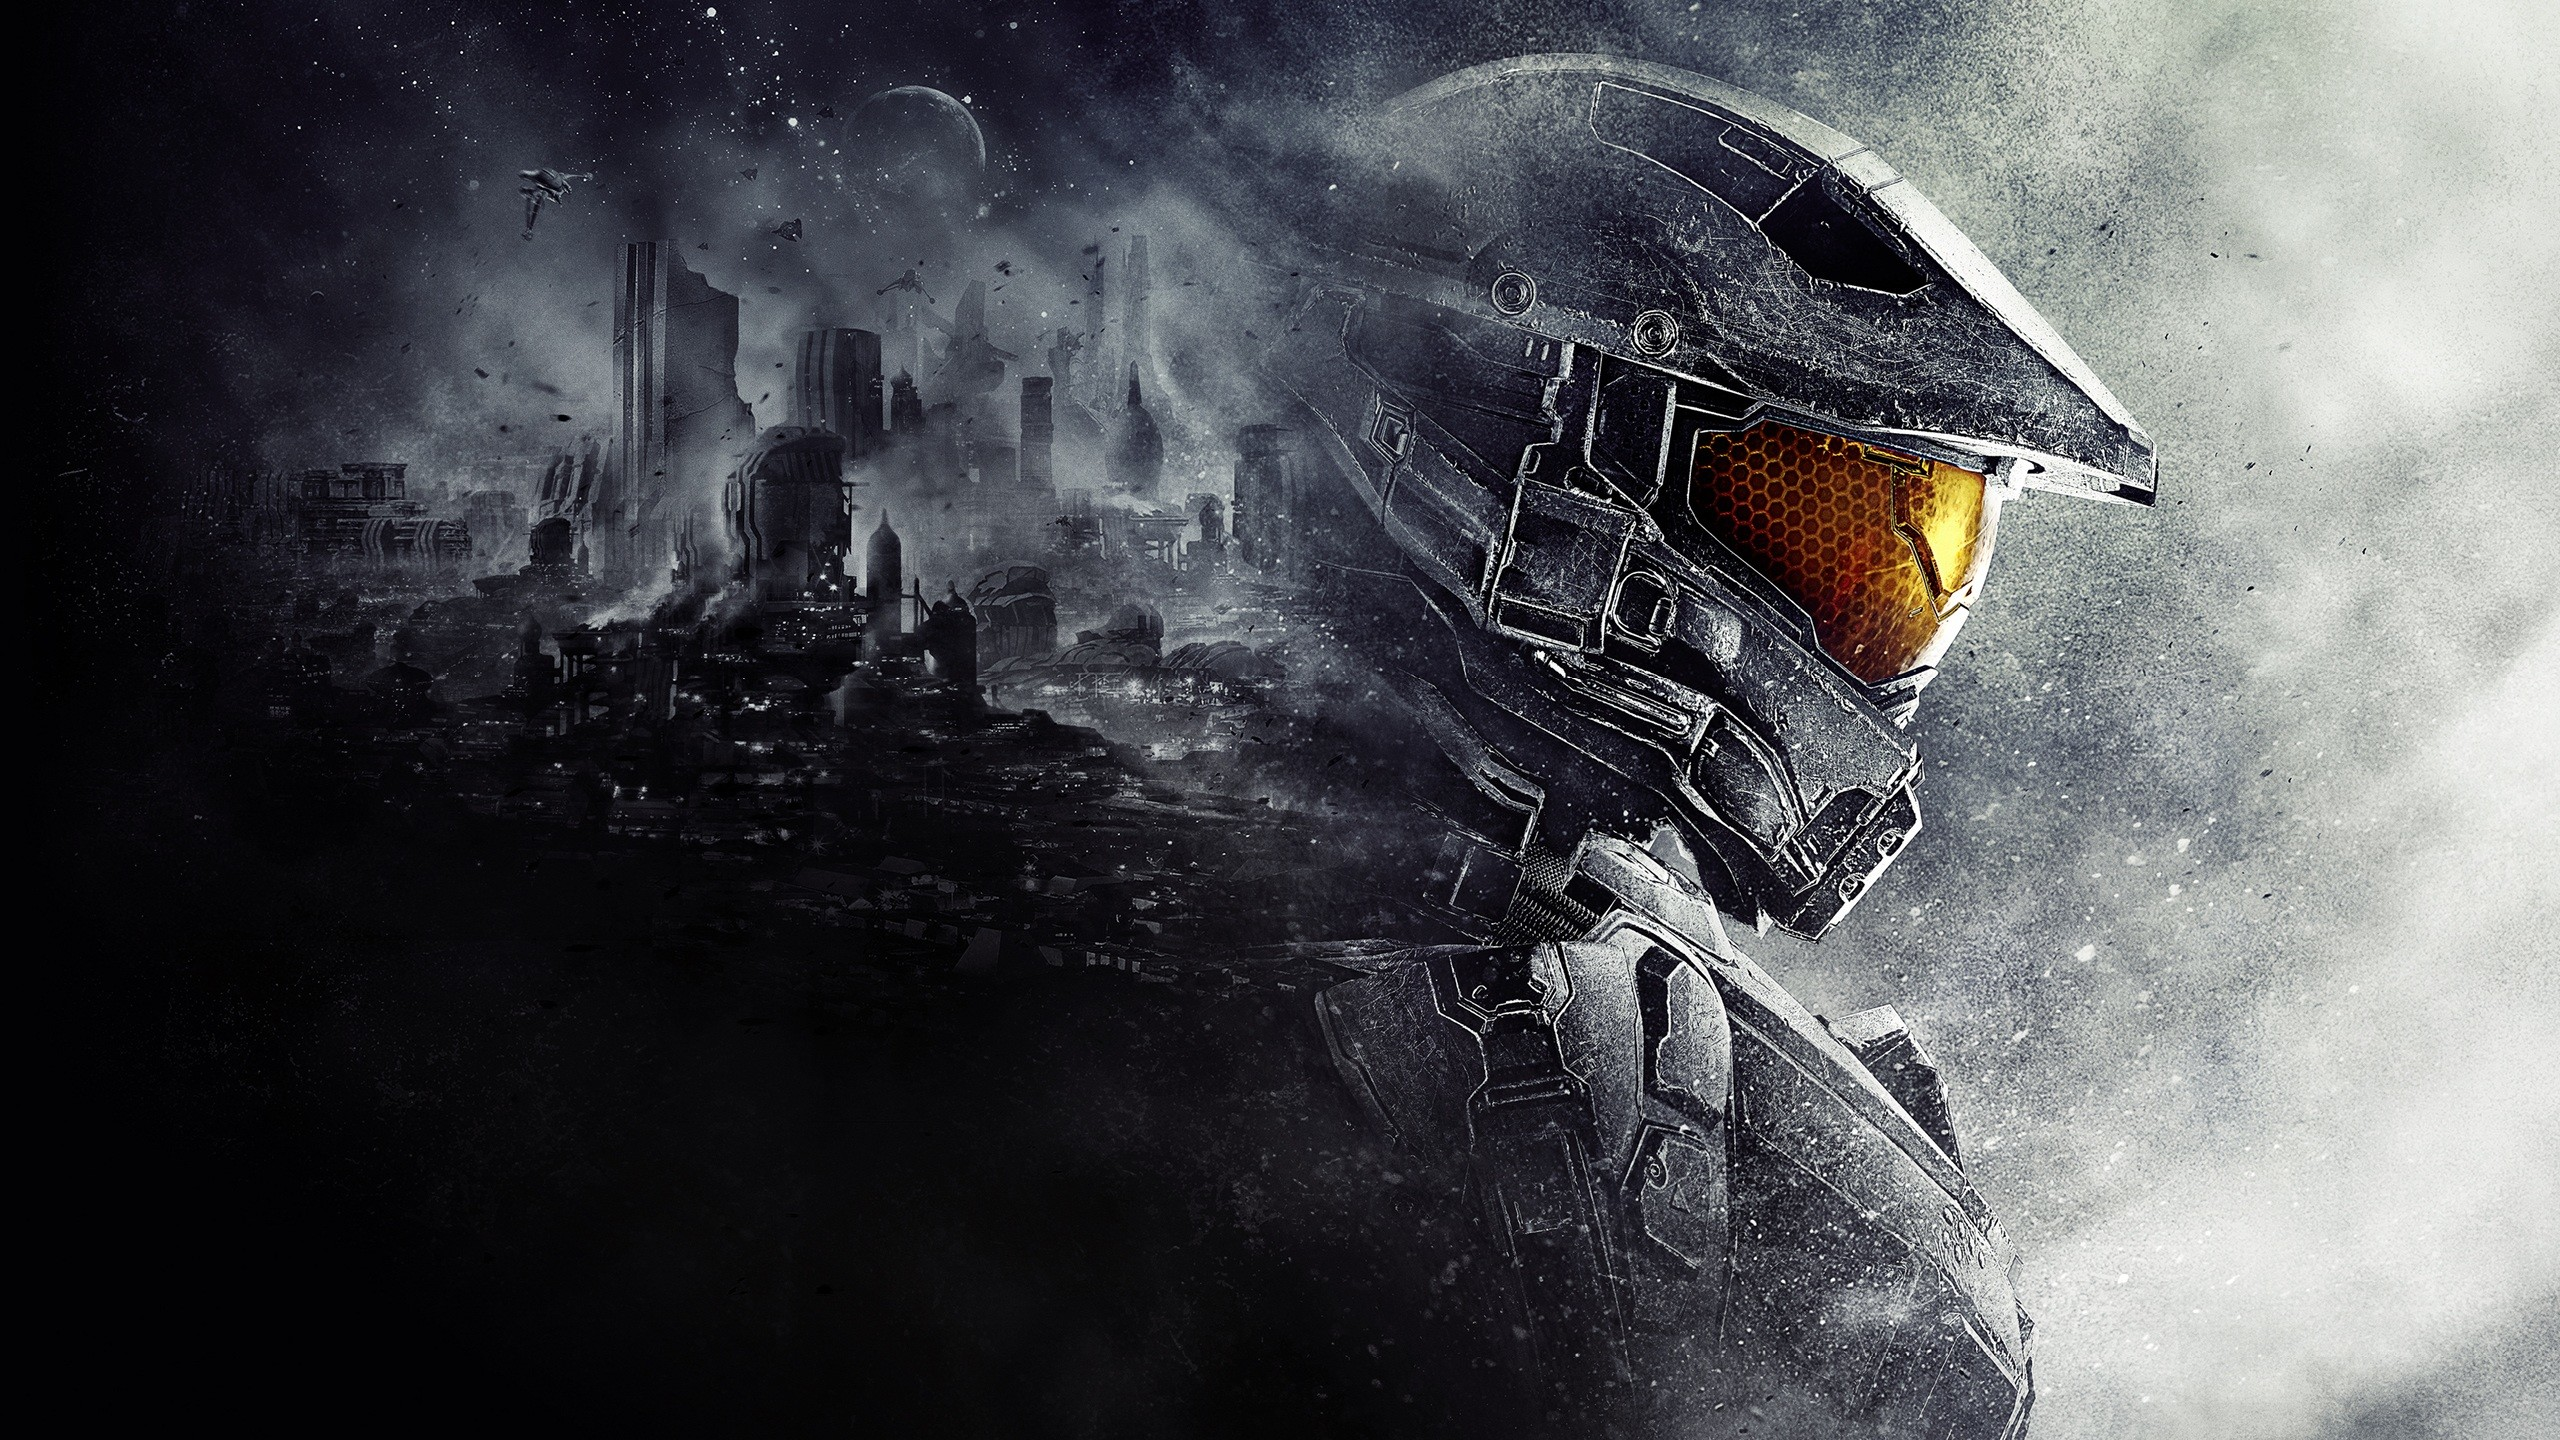 10 Latest Video Game Wallpapers 2560x1440 Full Hd 1080p: Awesome Halo Backgrounds (45+ Images